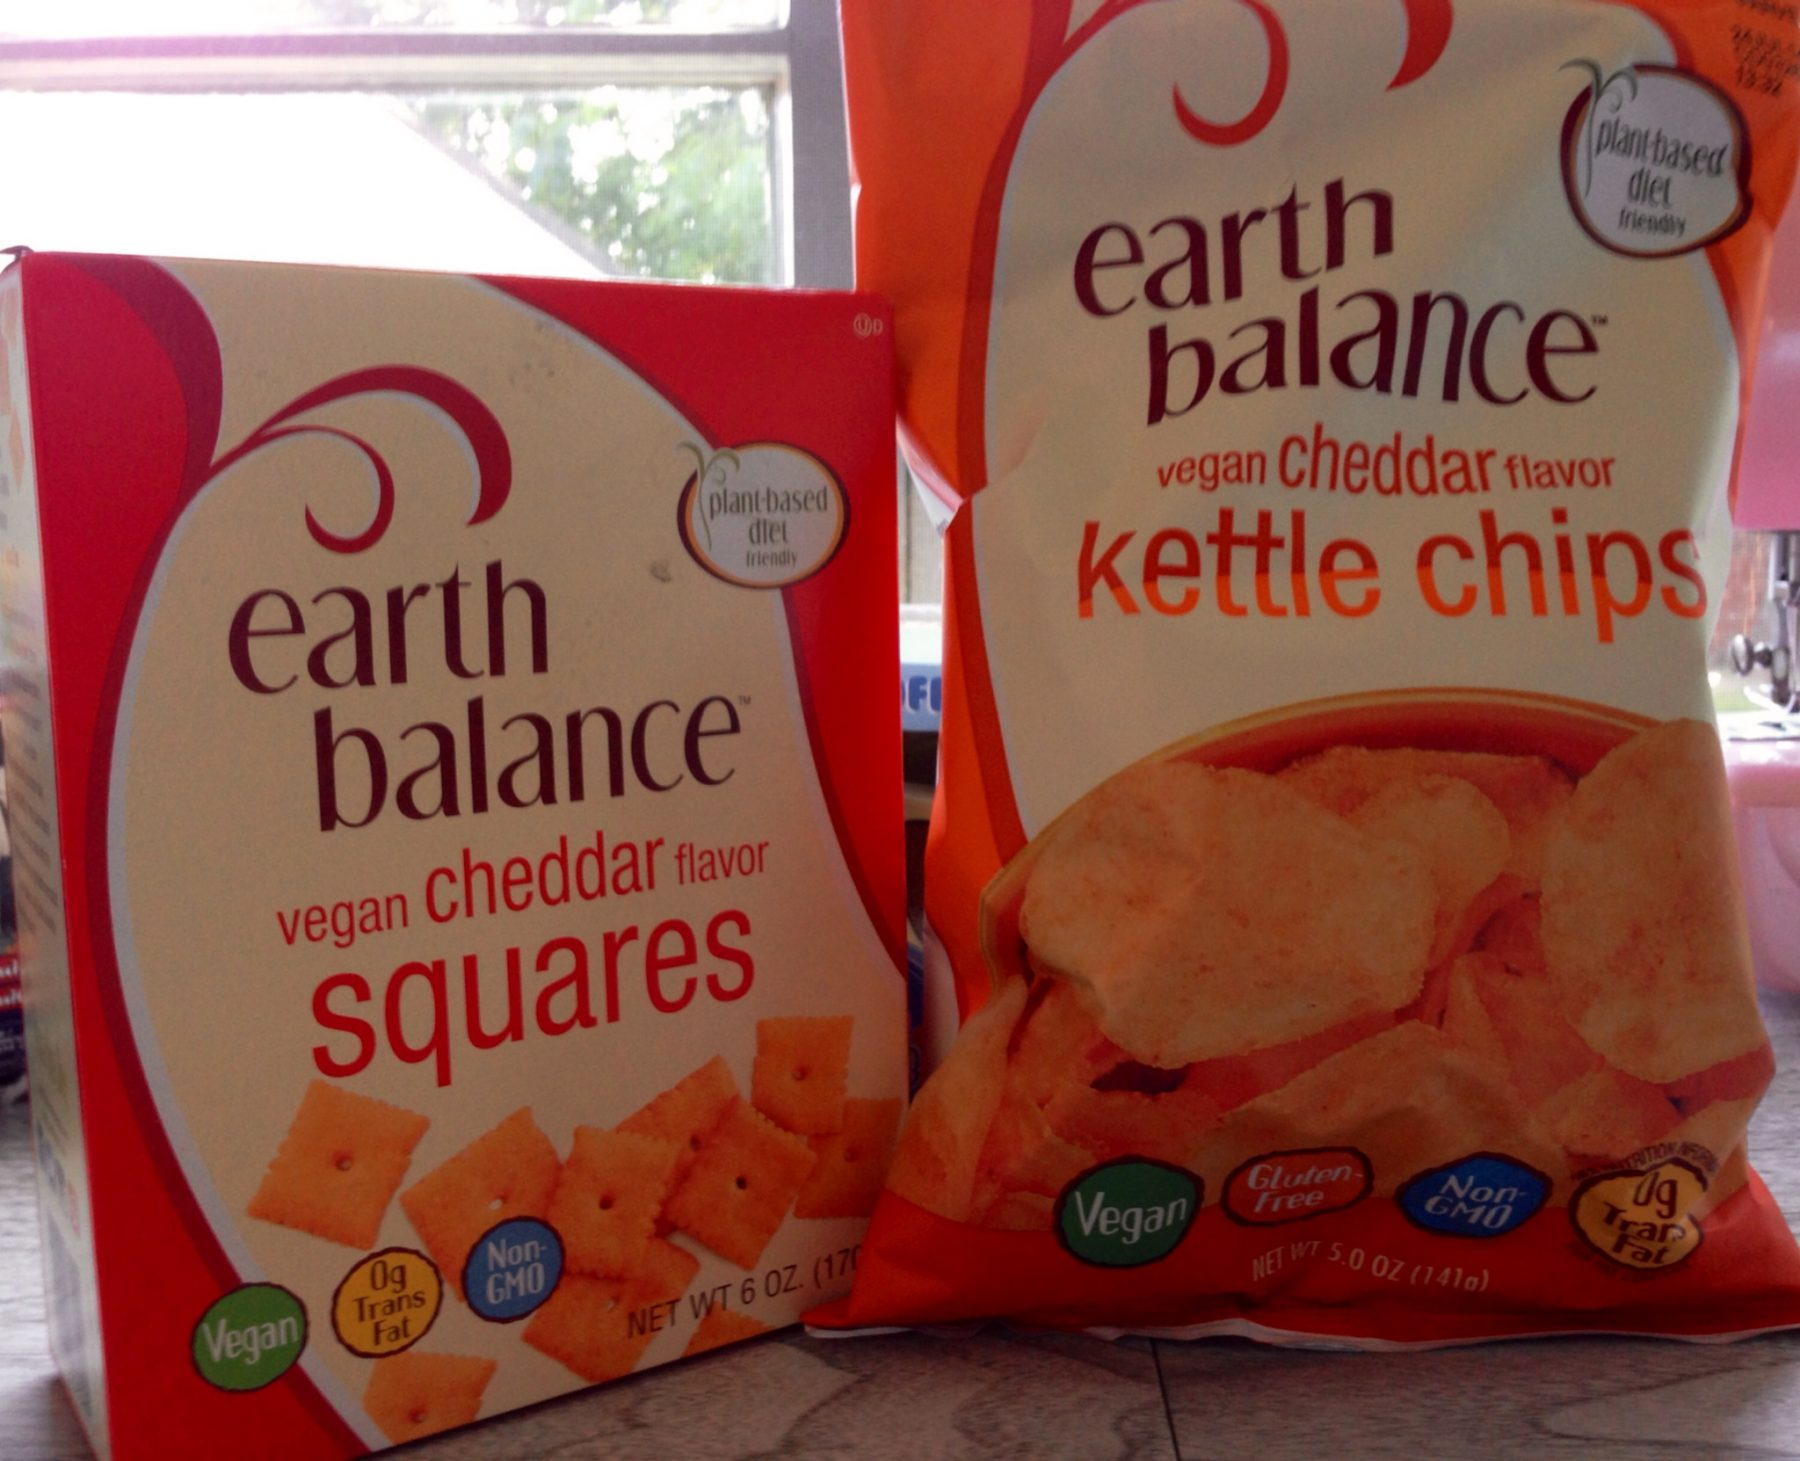 Earth Balance Vegan Cheddar Squares & Vegan Cheddar Kettle Chips